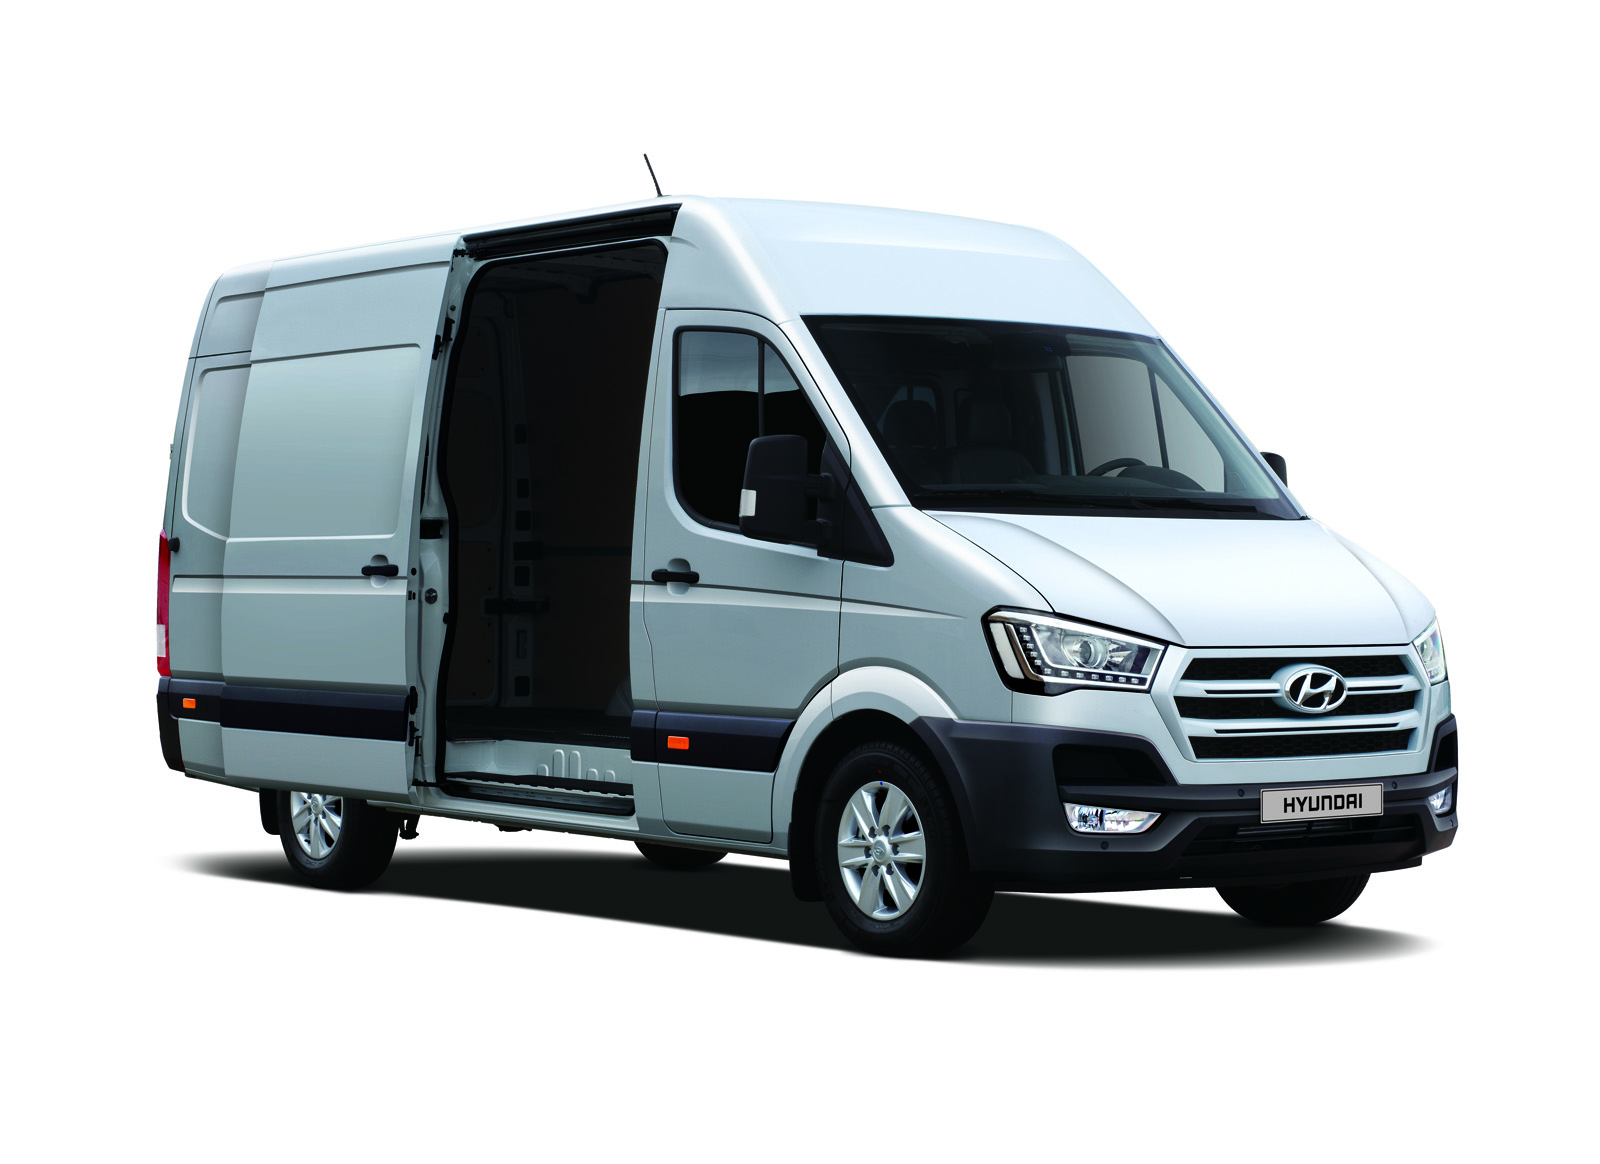 2015 Hyundai H350 Light Commercial Vehicle Starts Production – Video ...